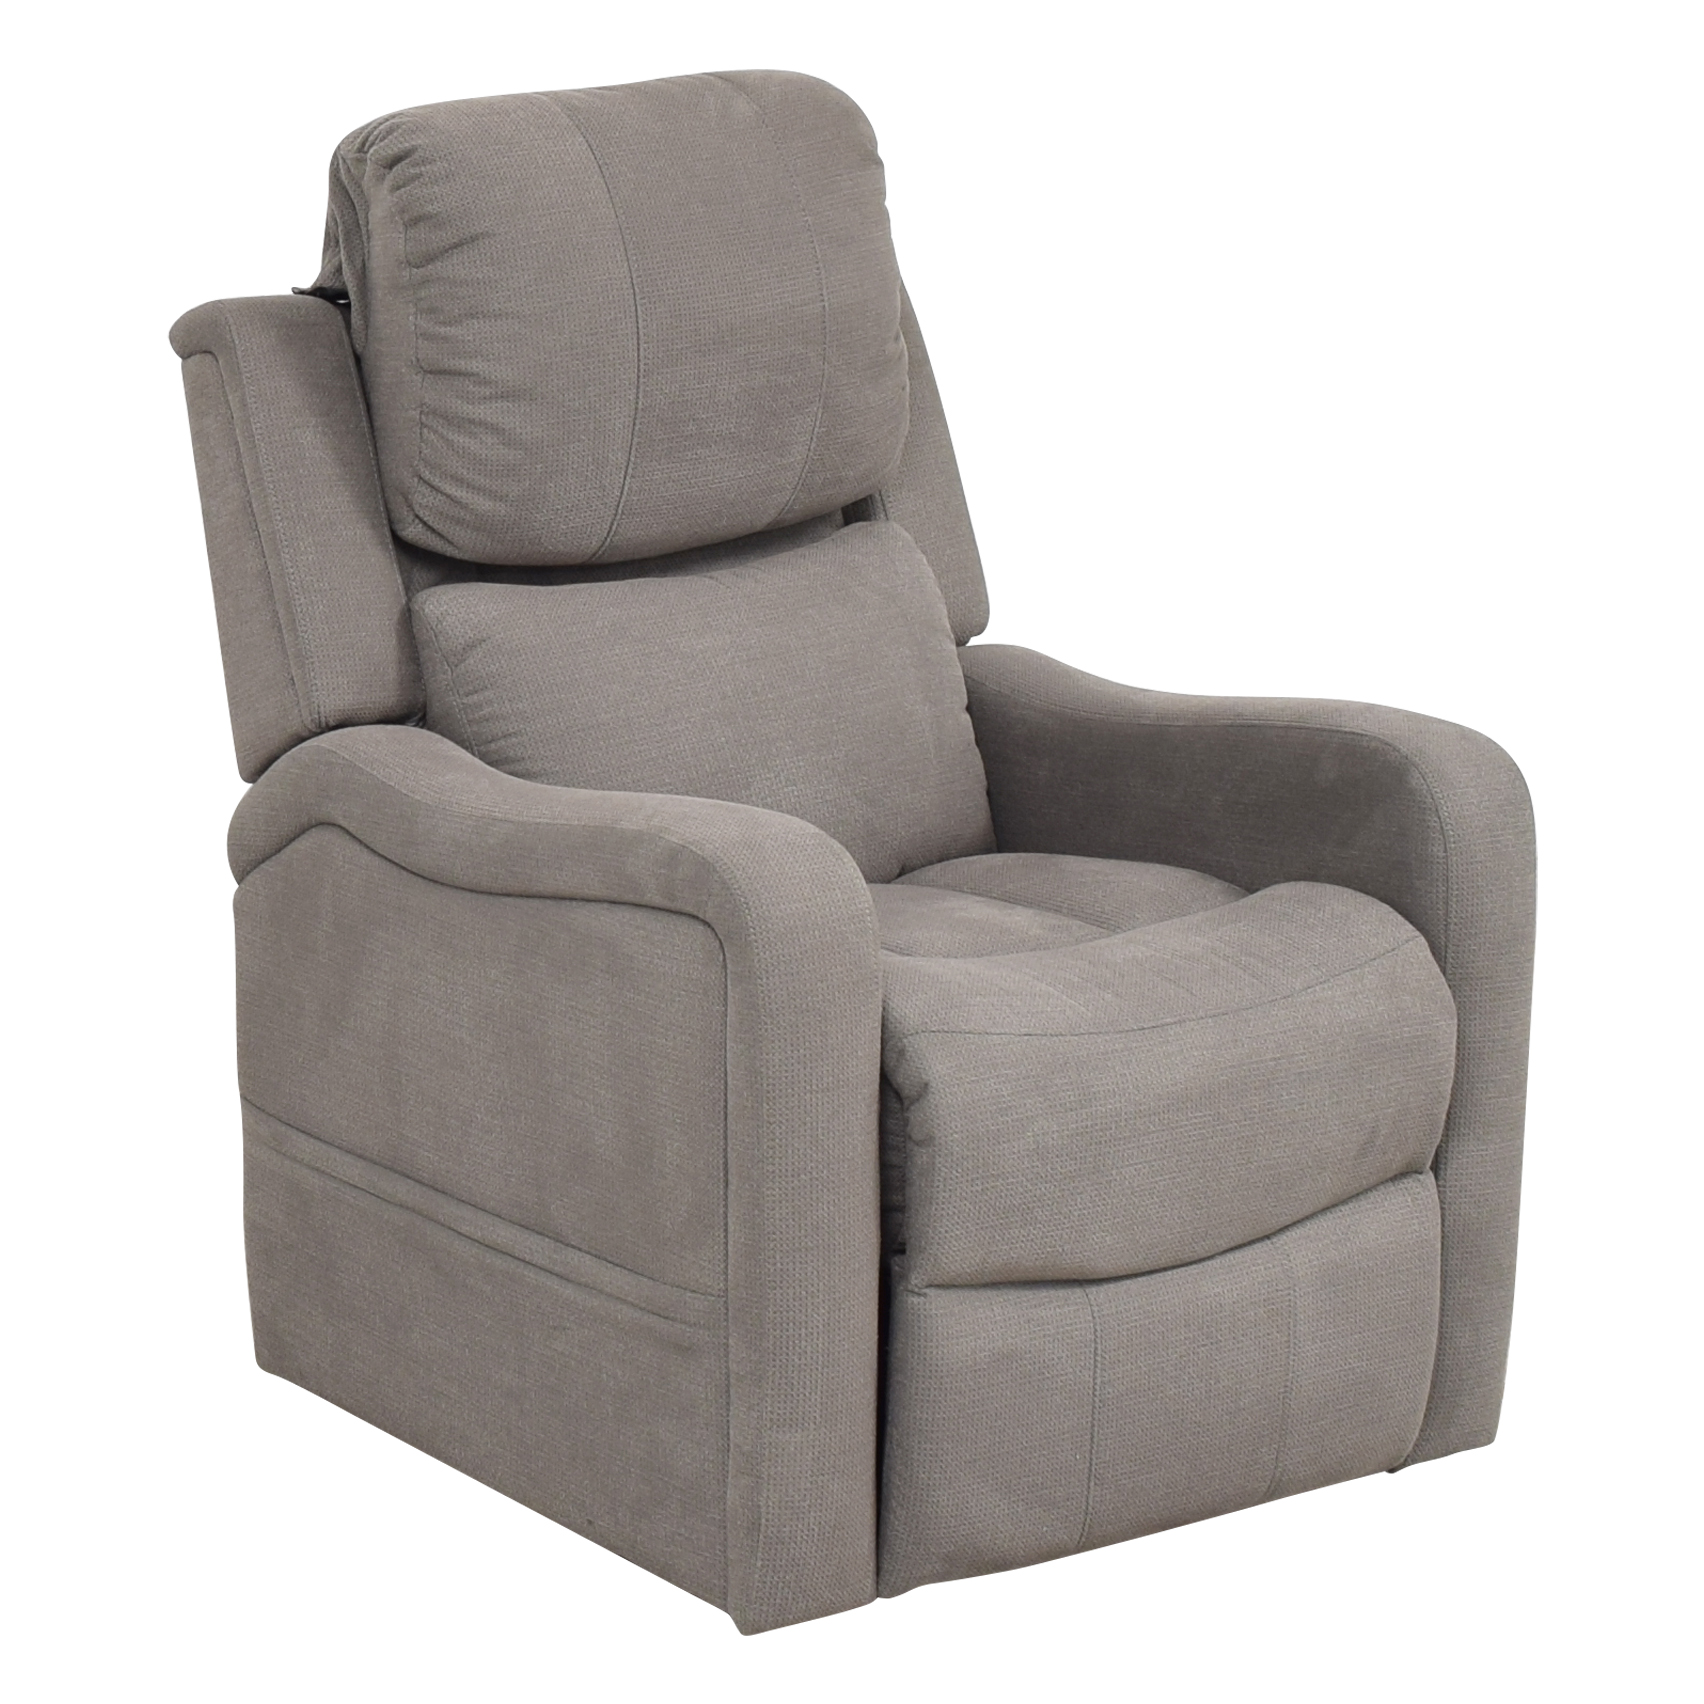 shop Copper River Home Copper River Home Therapedic Power Lift Reclining Chair online